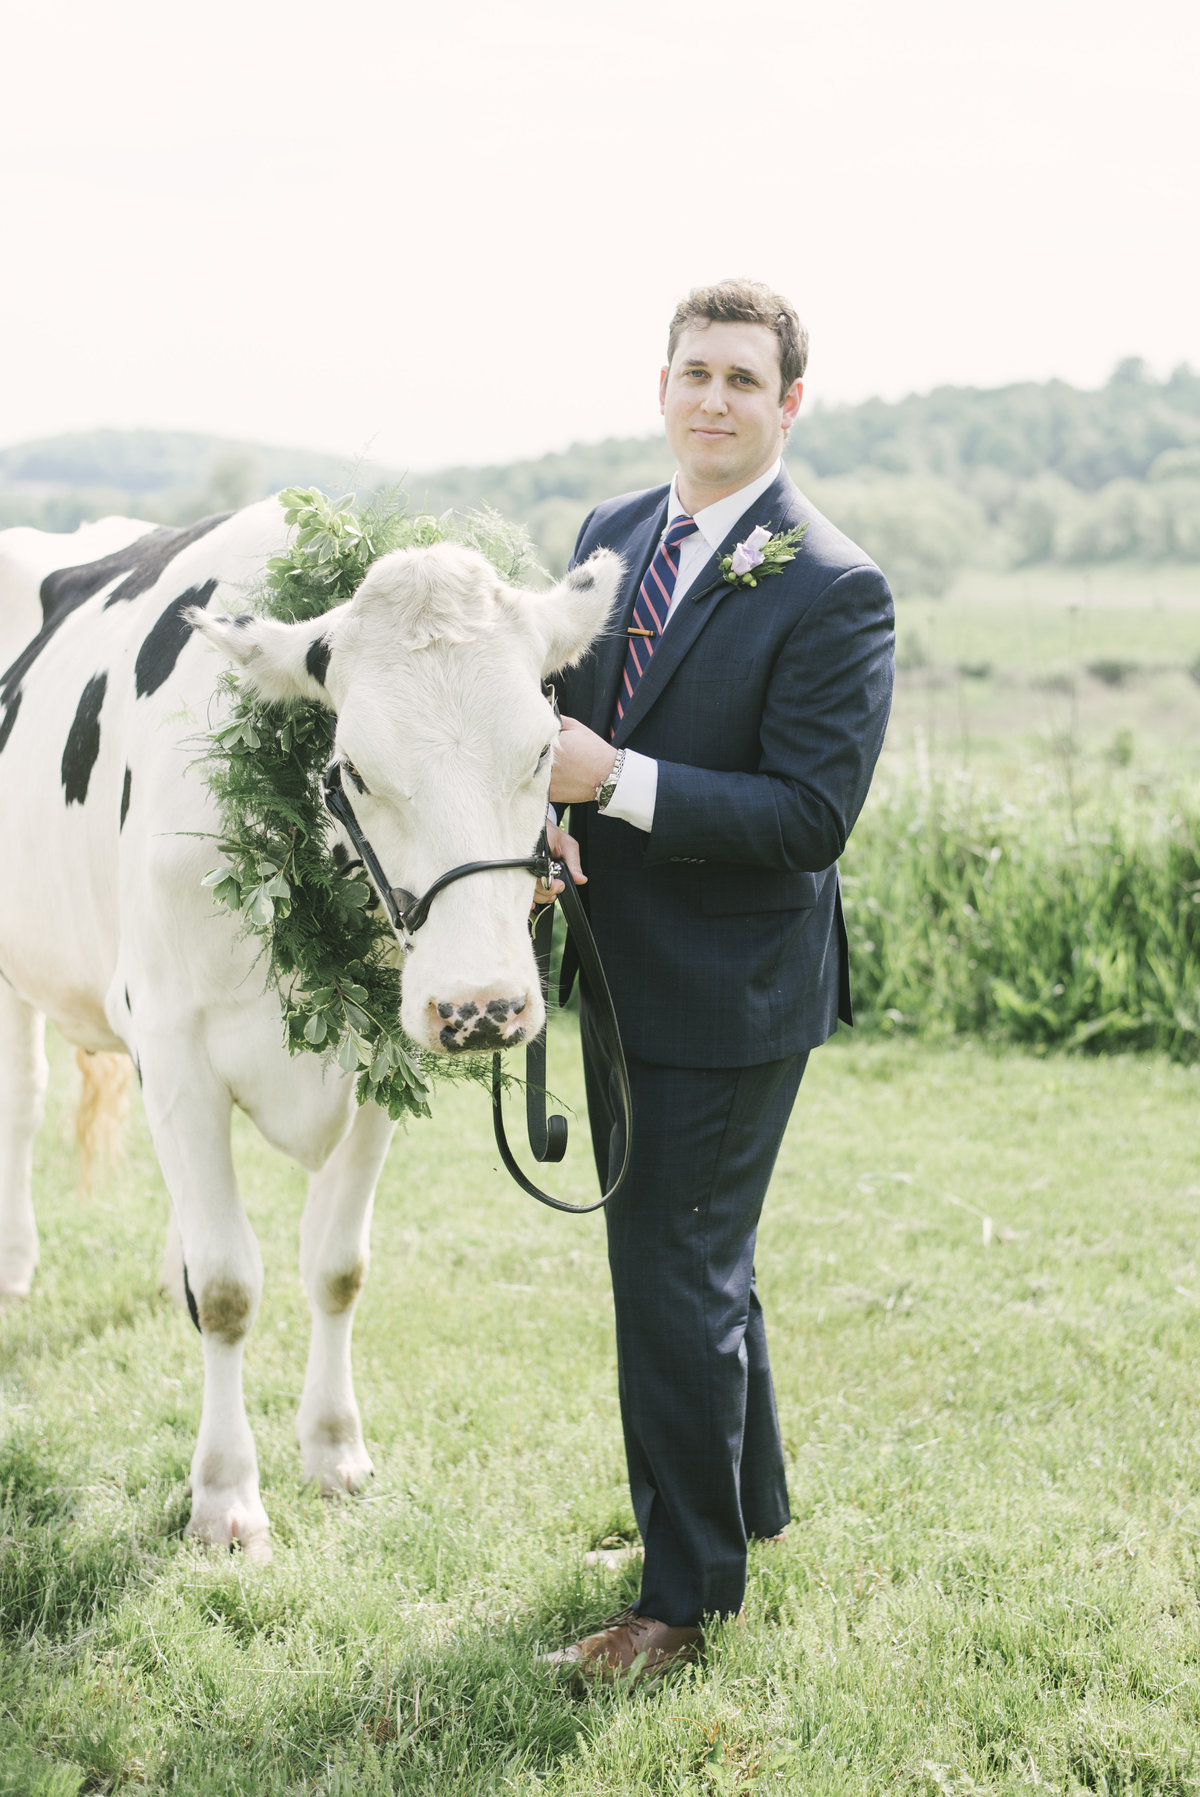 Monica-Relyea-Events-Alicia-King-Photography-Globe-Hill-Ronnybrook-Farm-Hudson-Valley-wedding-shoot-inspiration15